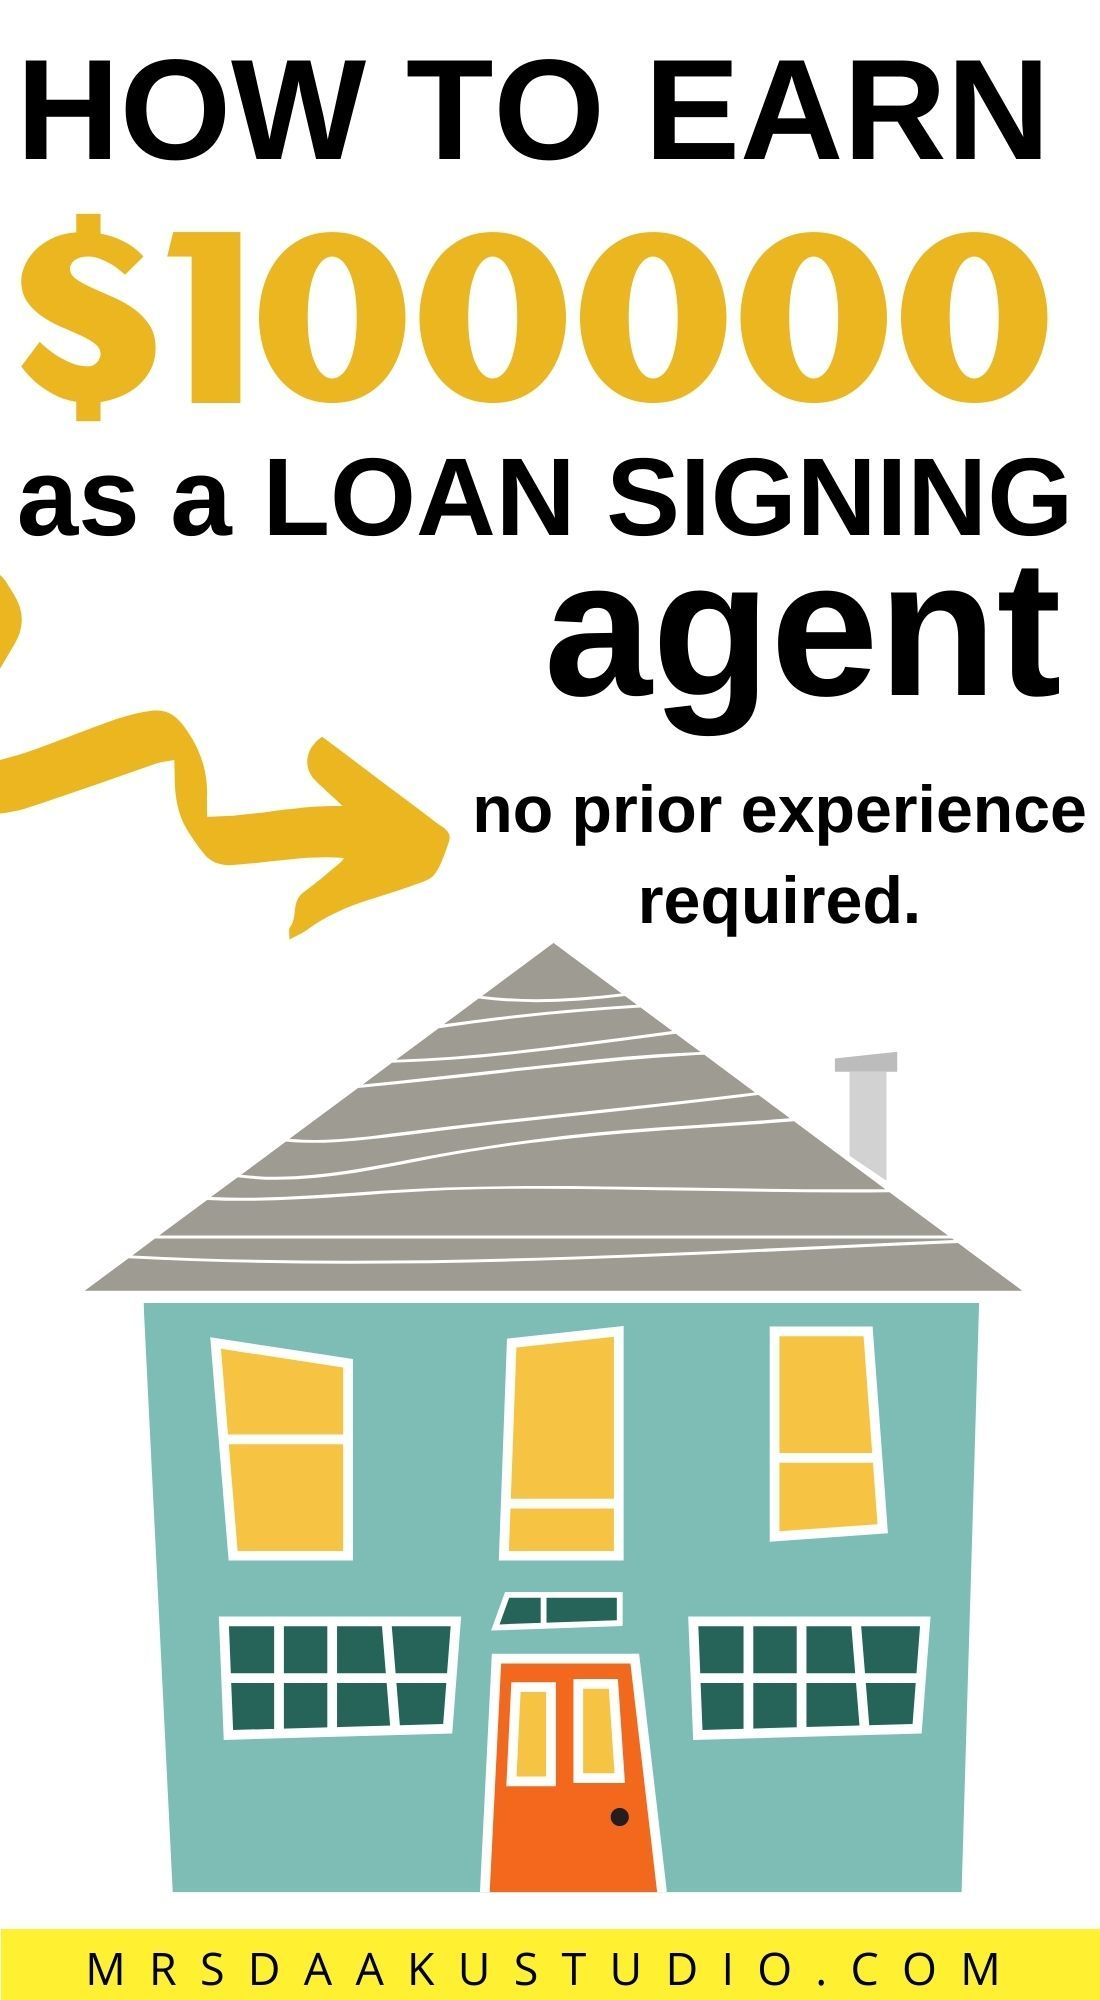 HOW TO A LOAN SIGNING AGENT (earn upto 100k a year